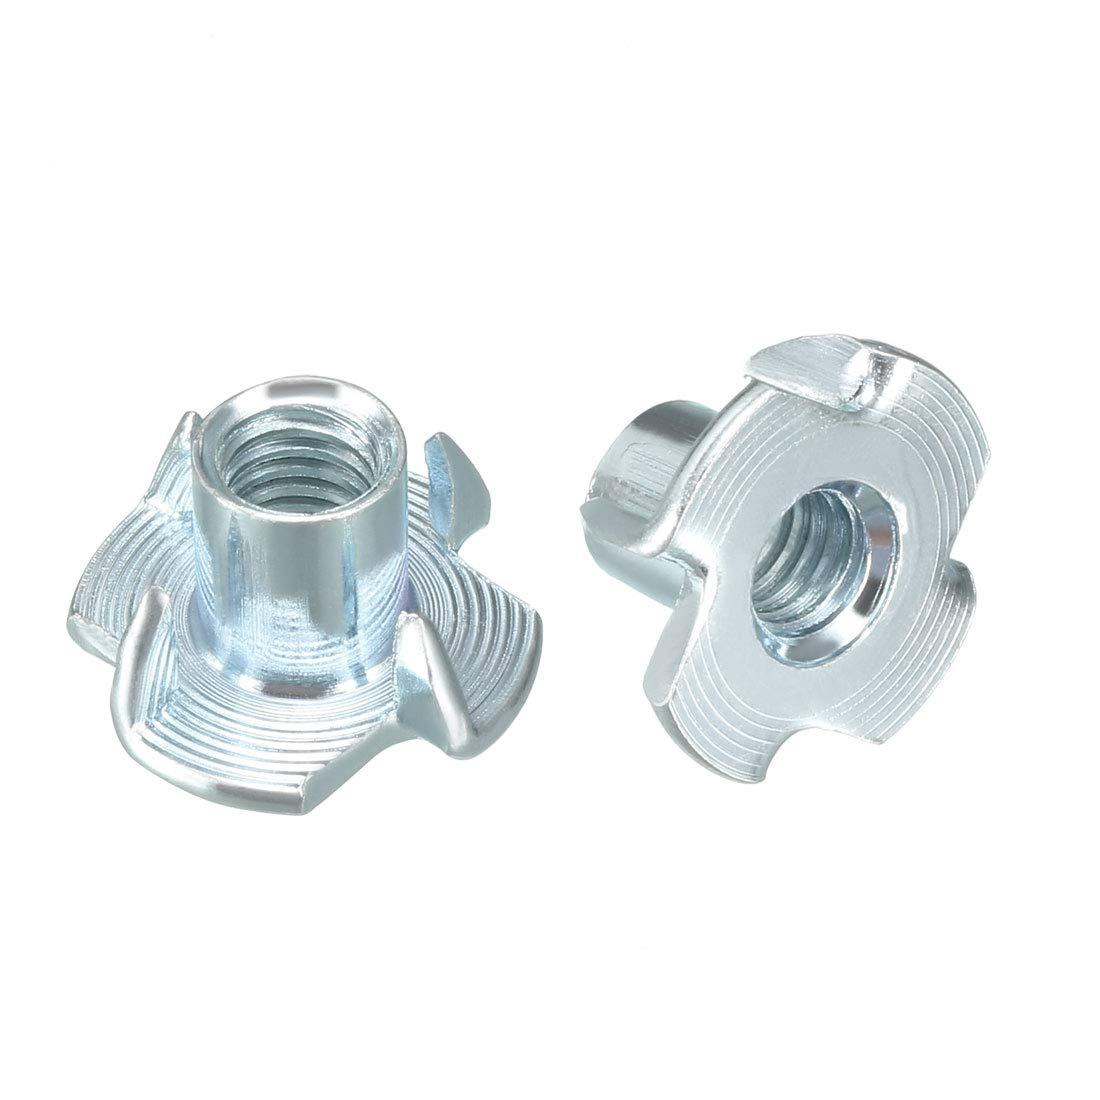 uxcell 100Pcs M6 4 Pronged Tee Nut T-Nut for Rock Climbing Holds Wood Cabinetry